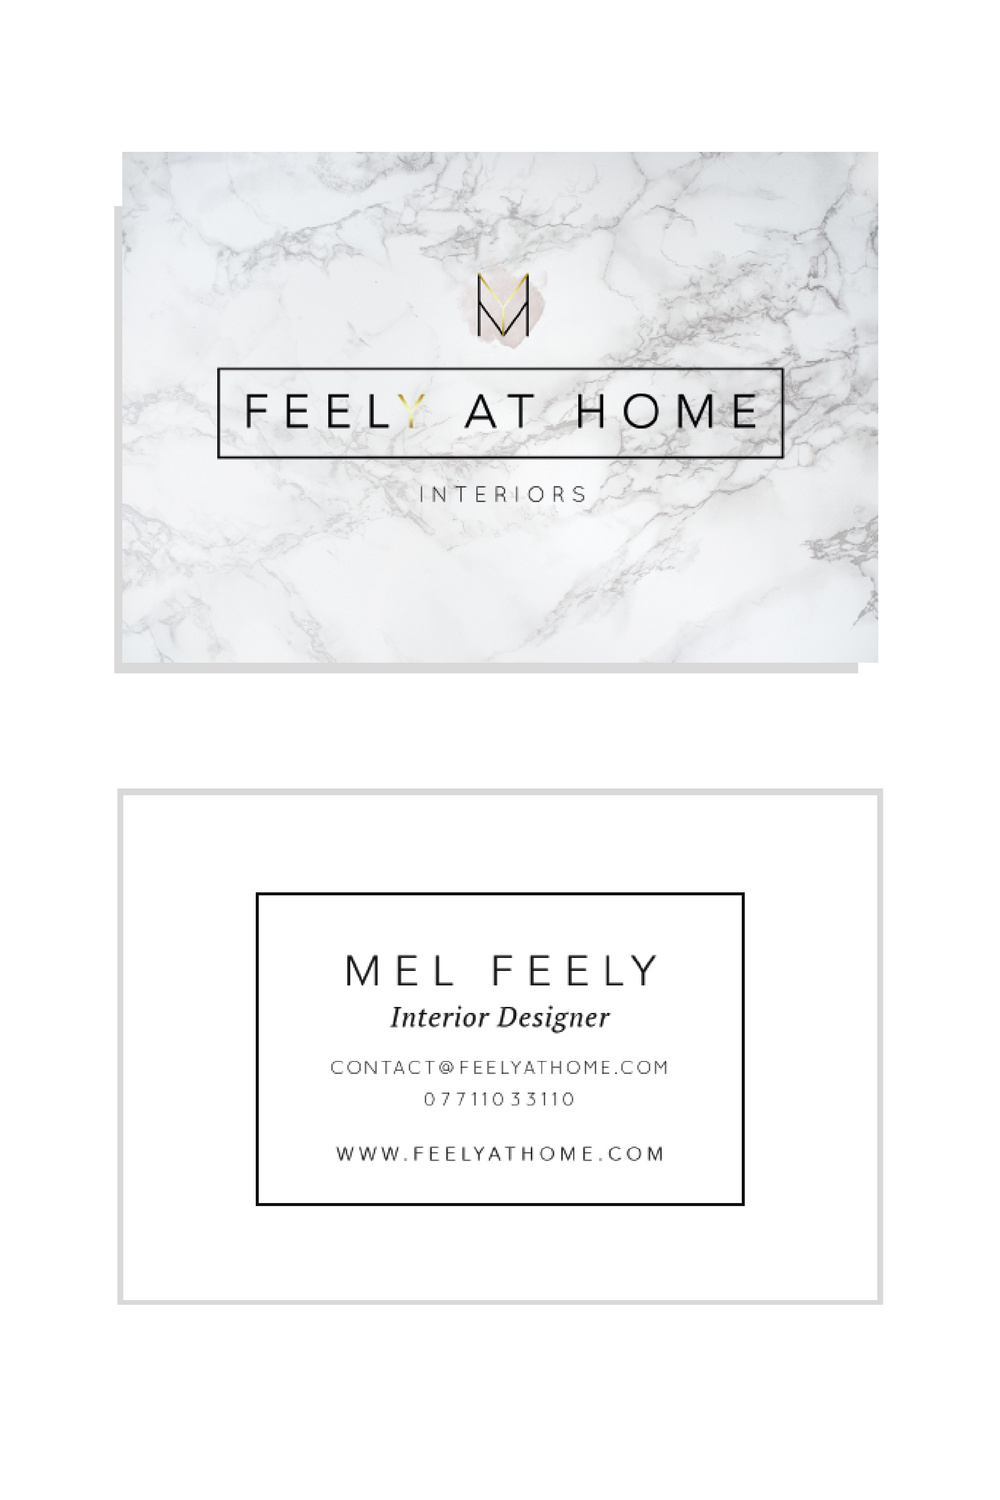 Feely at Home business cards